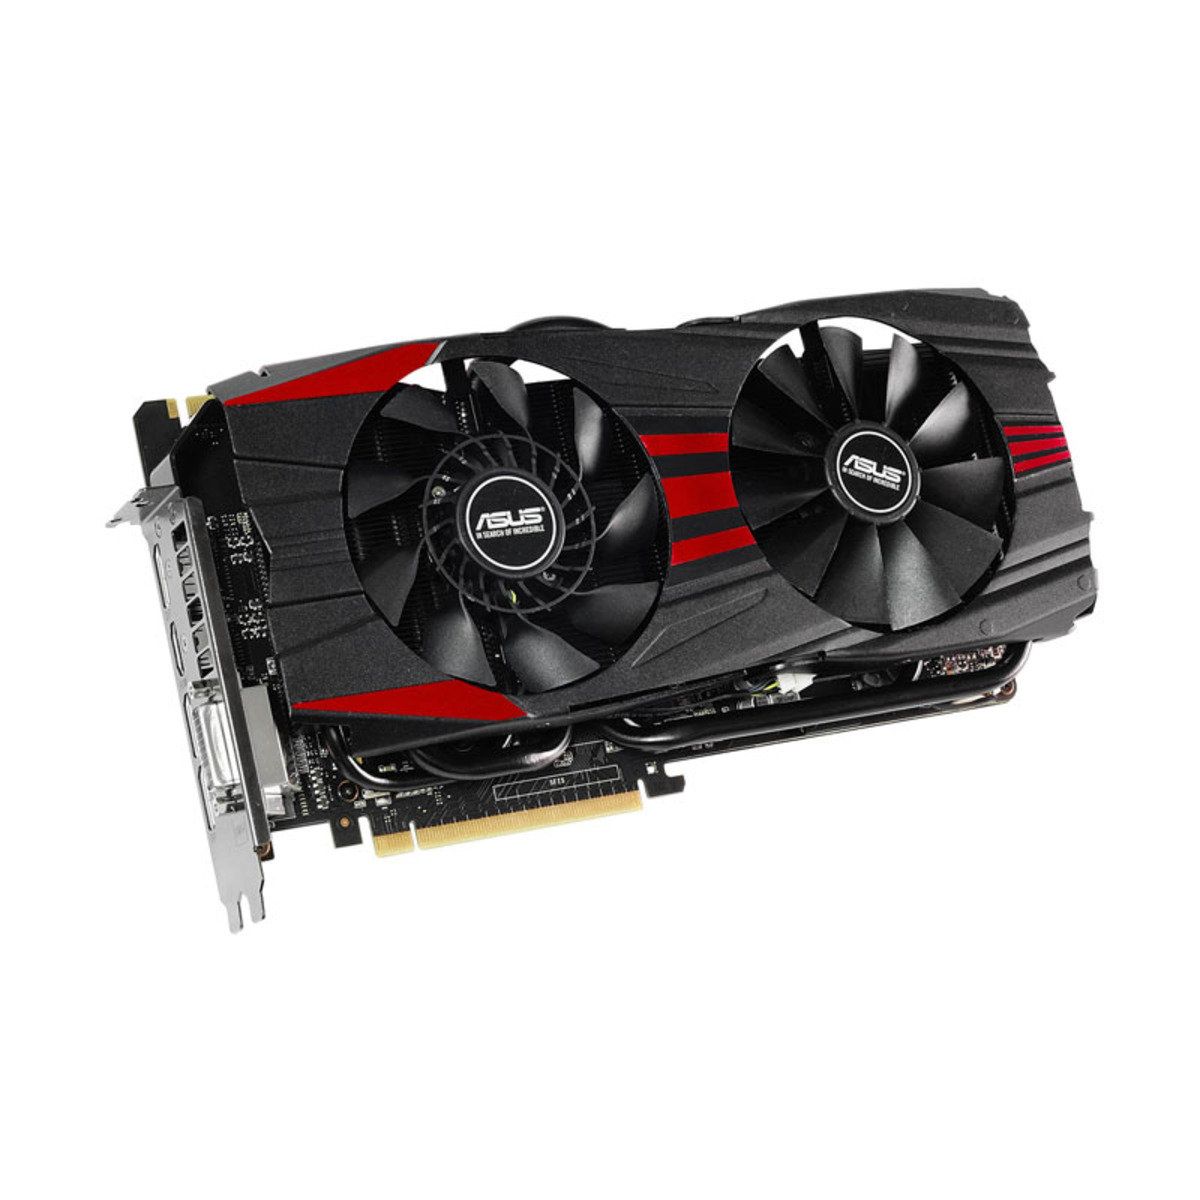 GTX970 4GB GDDR5 PCI-E 高效能獨立顯示卡 GTX970-DC2OC-4GD5-BLACK